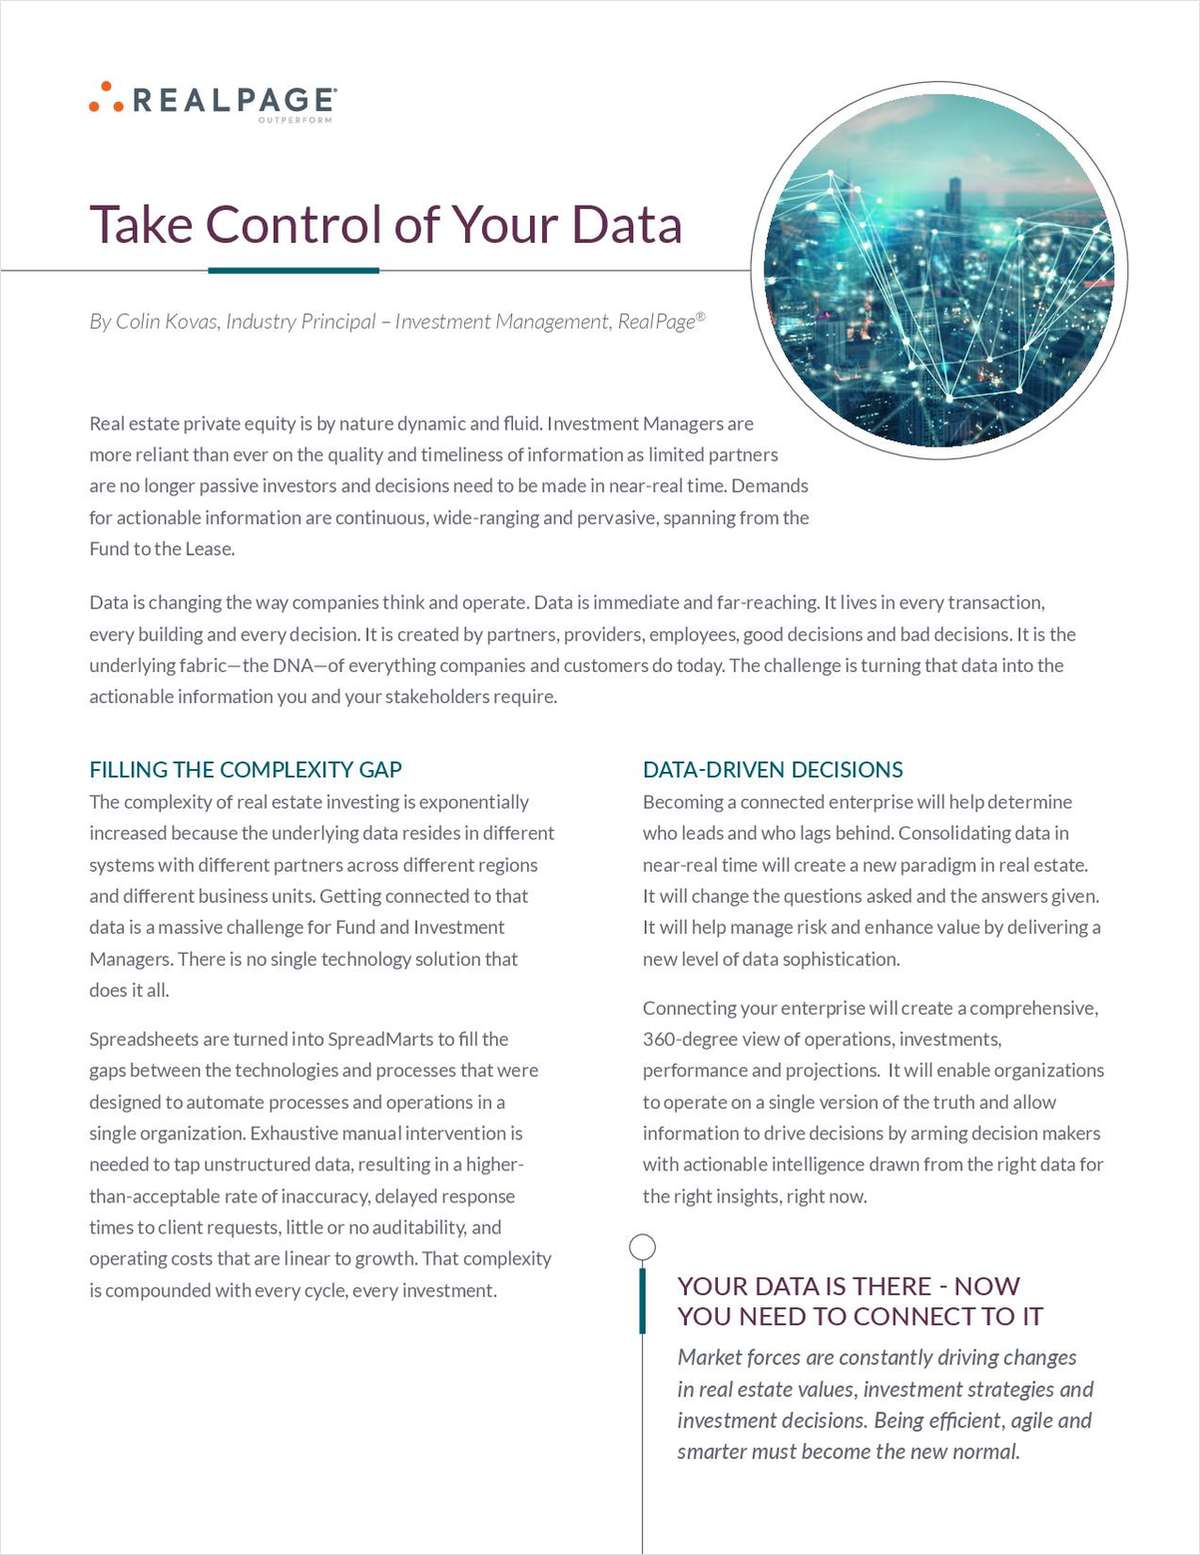 Take Control of Your Data to Deliver More Value